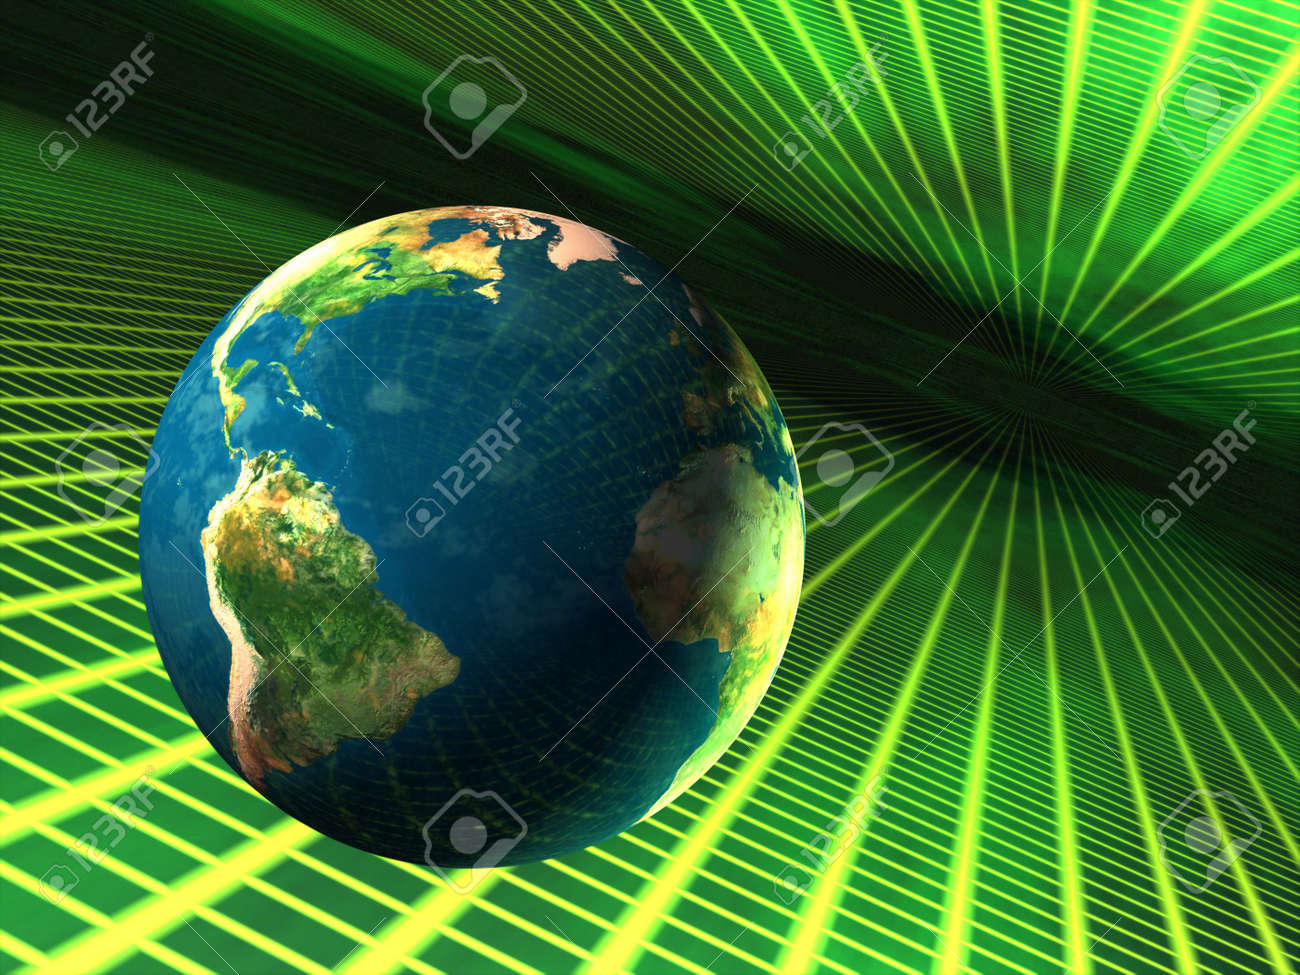 Planet earth travelling through cyberspace Stock Photo - 333255